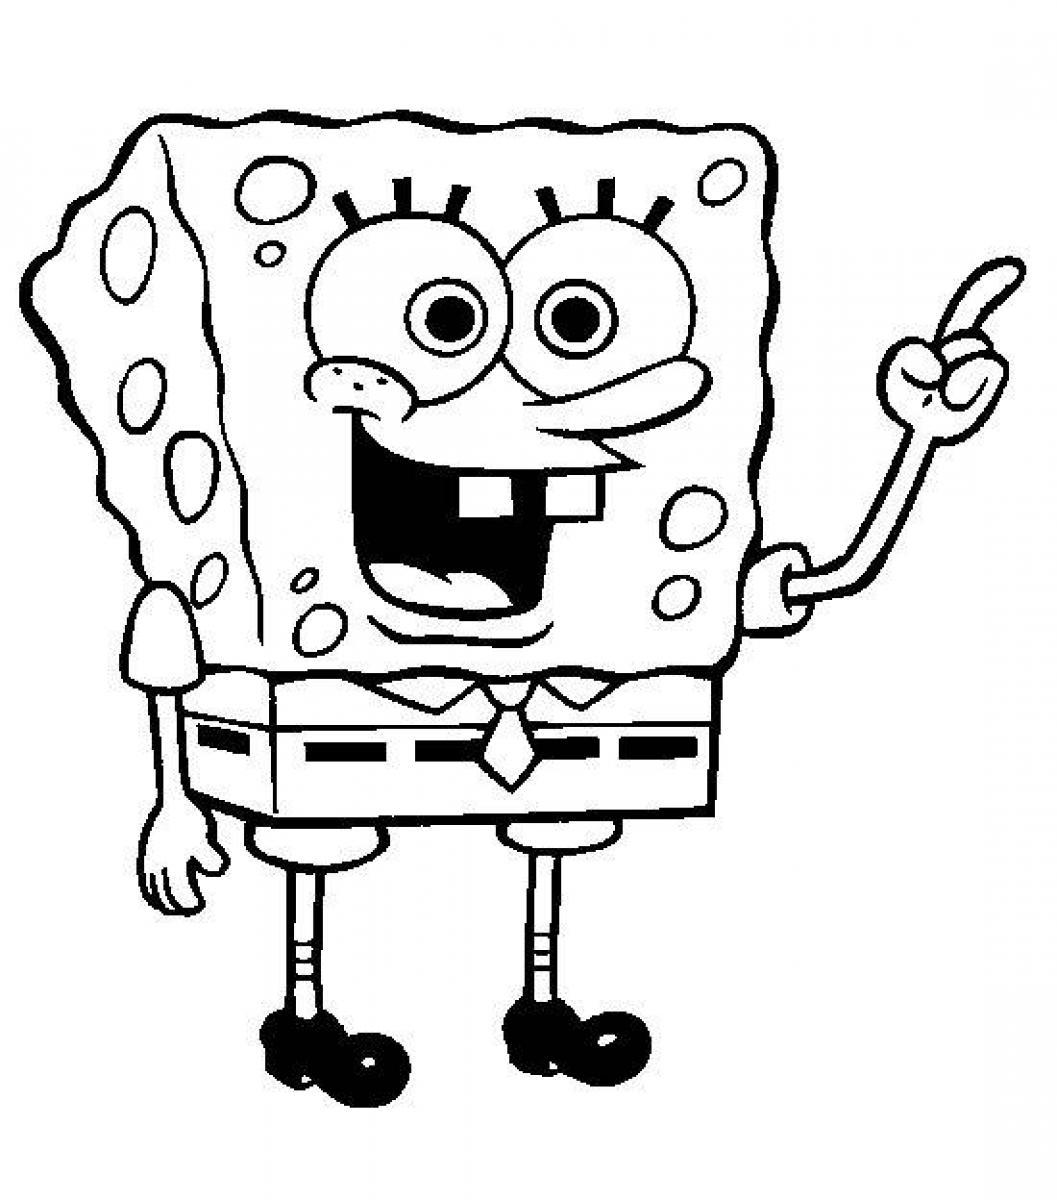 Printable Spongebob Squarepants Coloring Pages Coloring Me Spongebob Coloring Pages